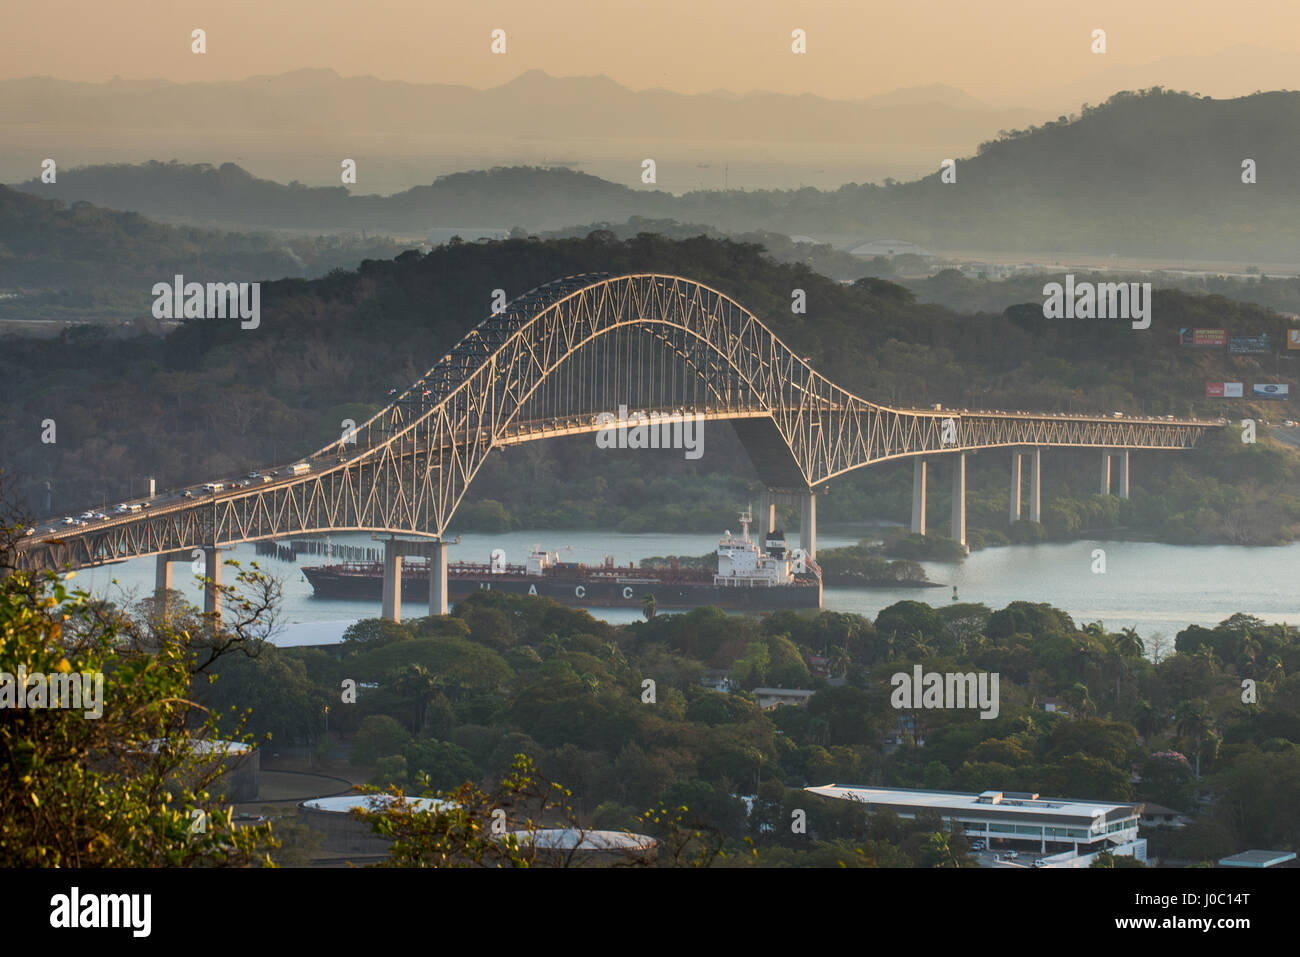 Cargo boat passes the Bridge of the Americas on the Panama Canal, Panama City, Panama, Central America - Stock Image